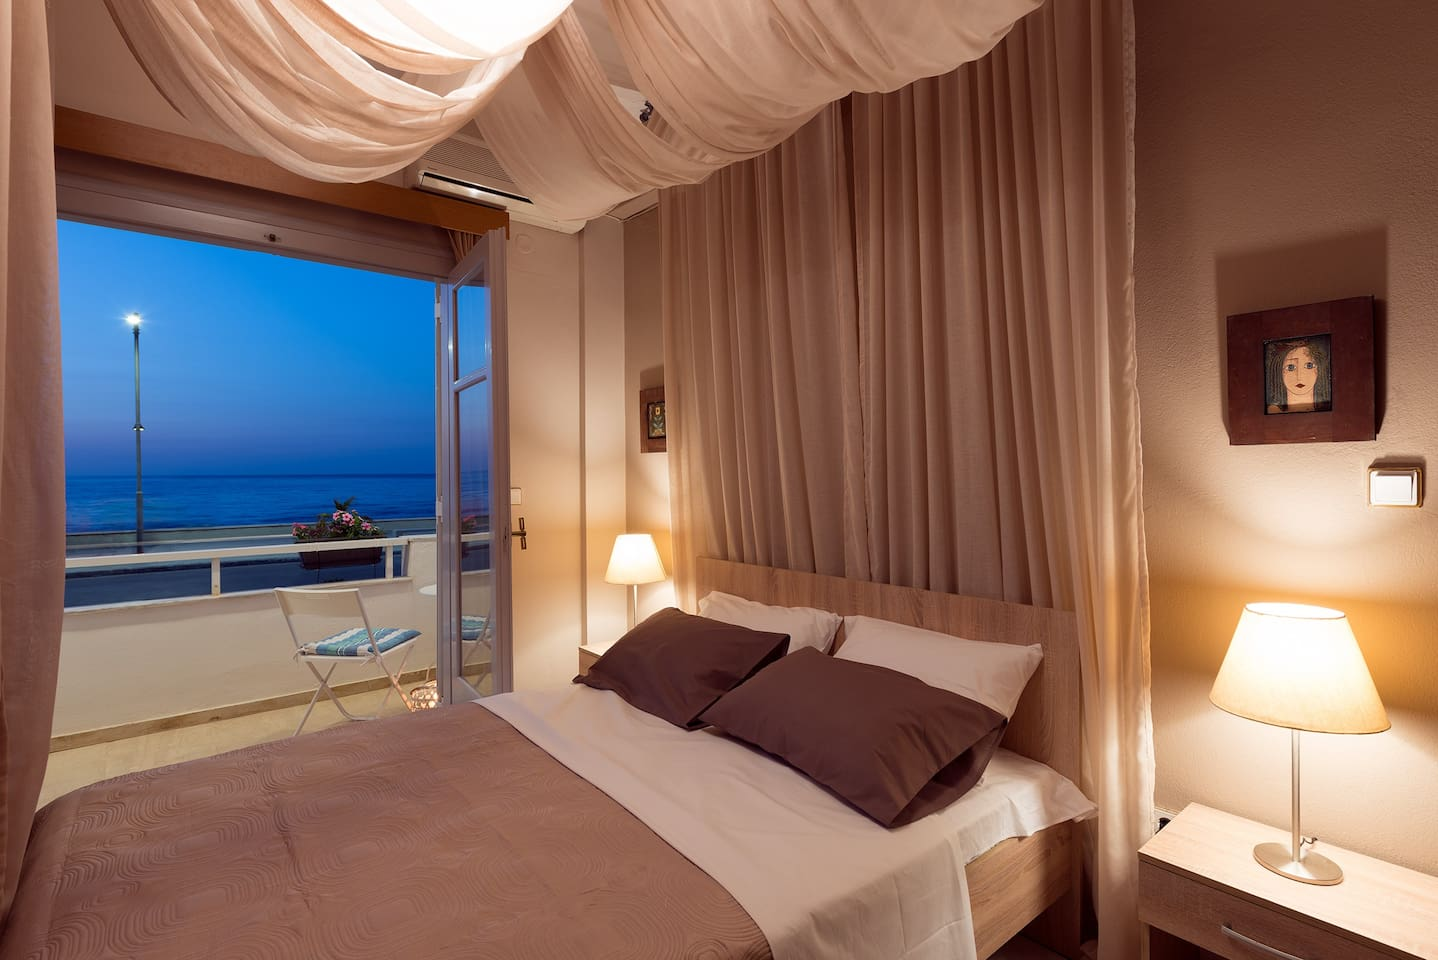 GREAT SEA VIEW AT NIGHT FROM MAIN BEDROOM